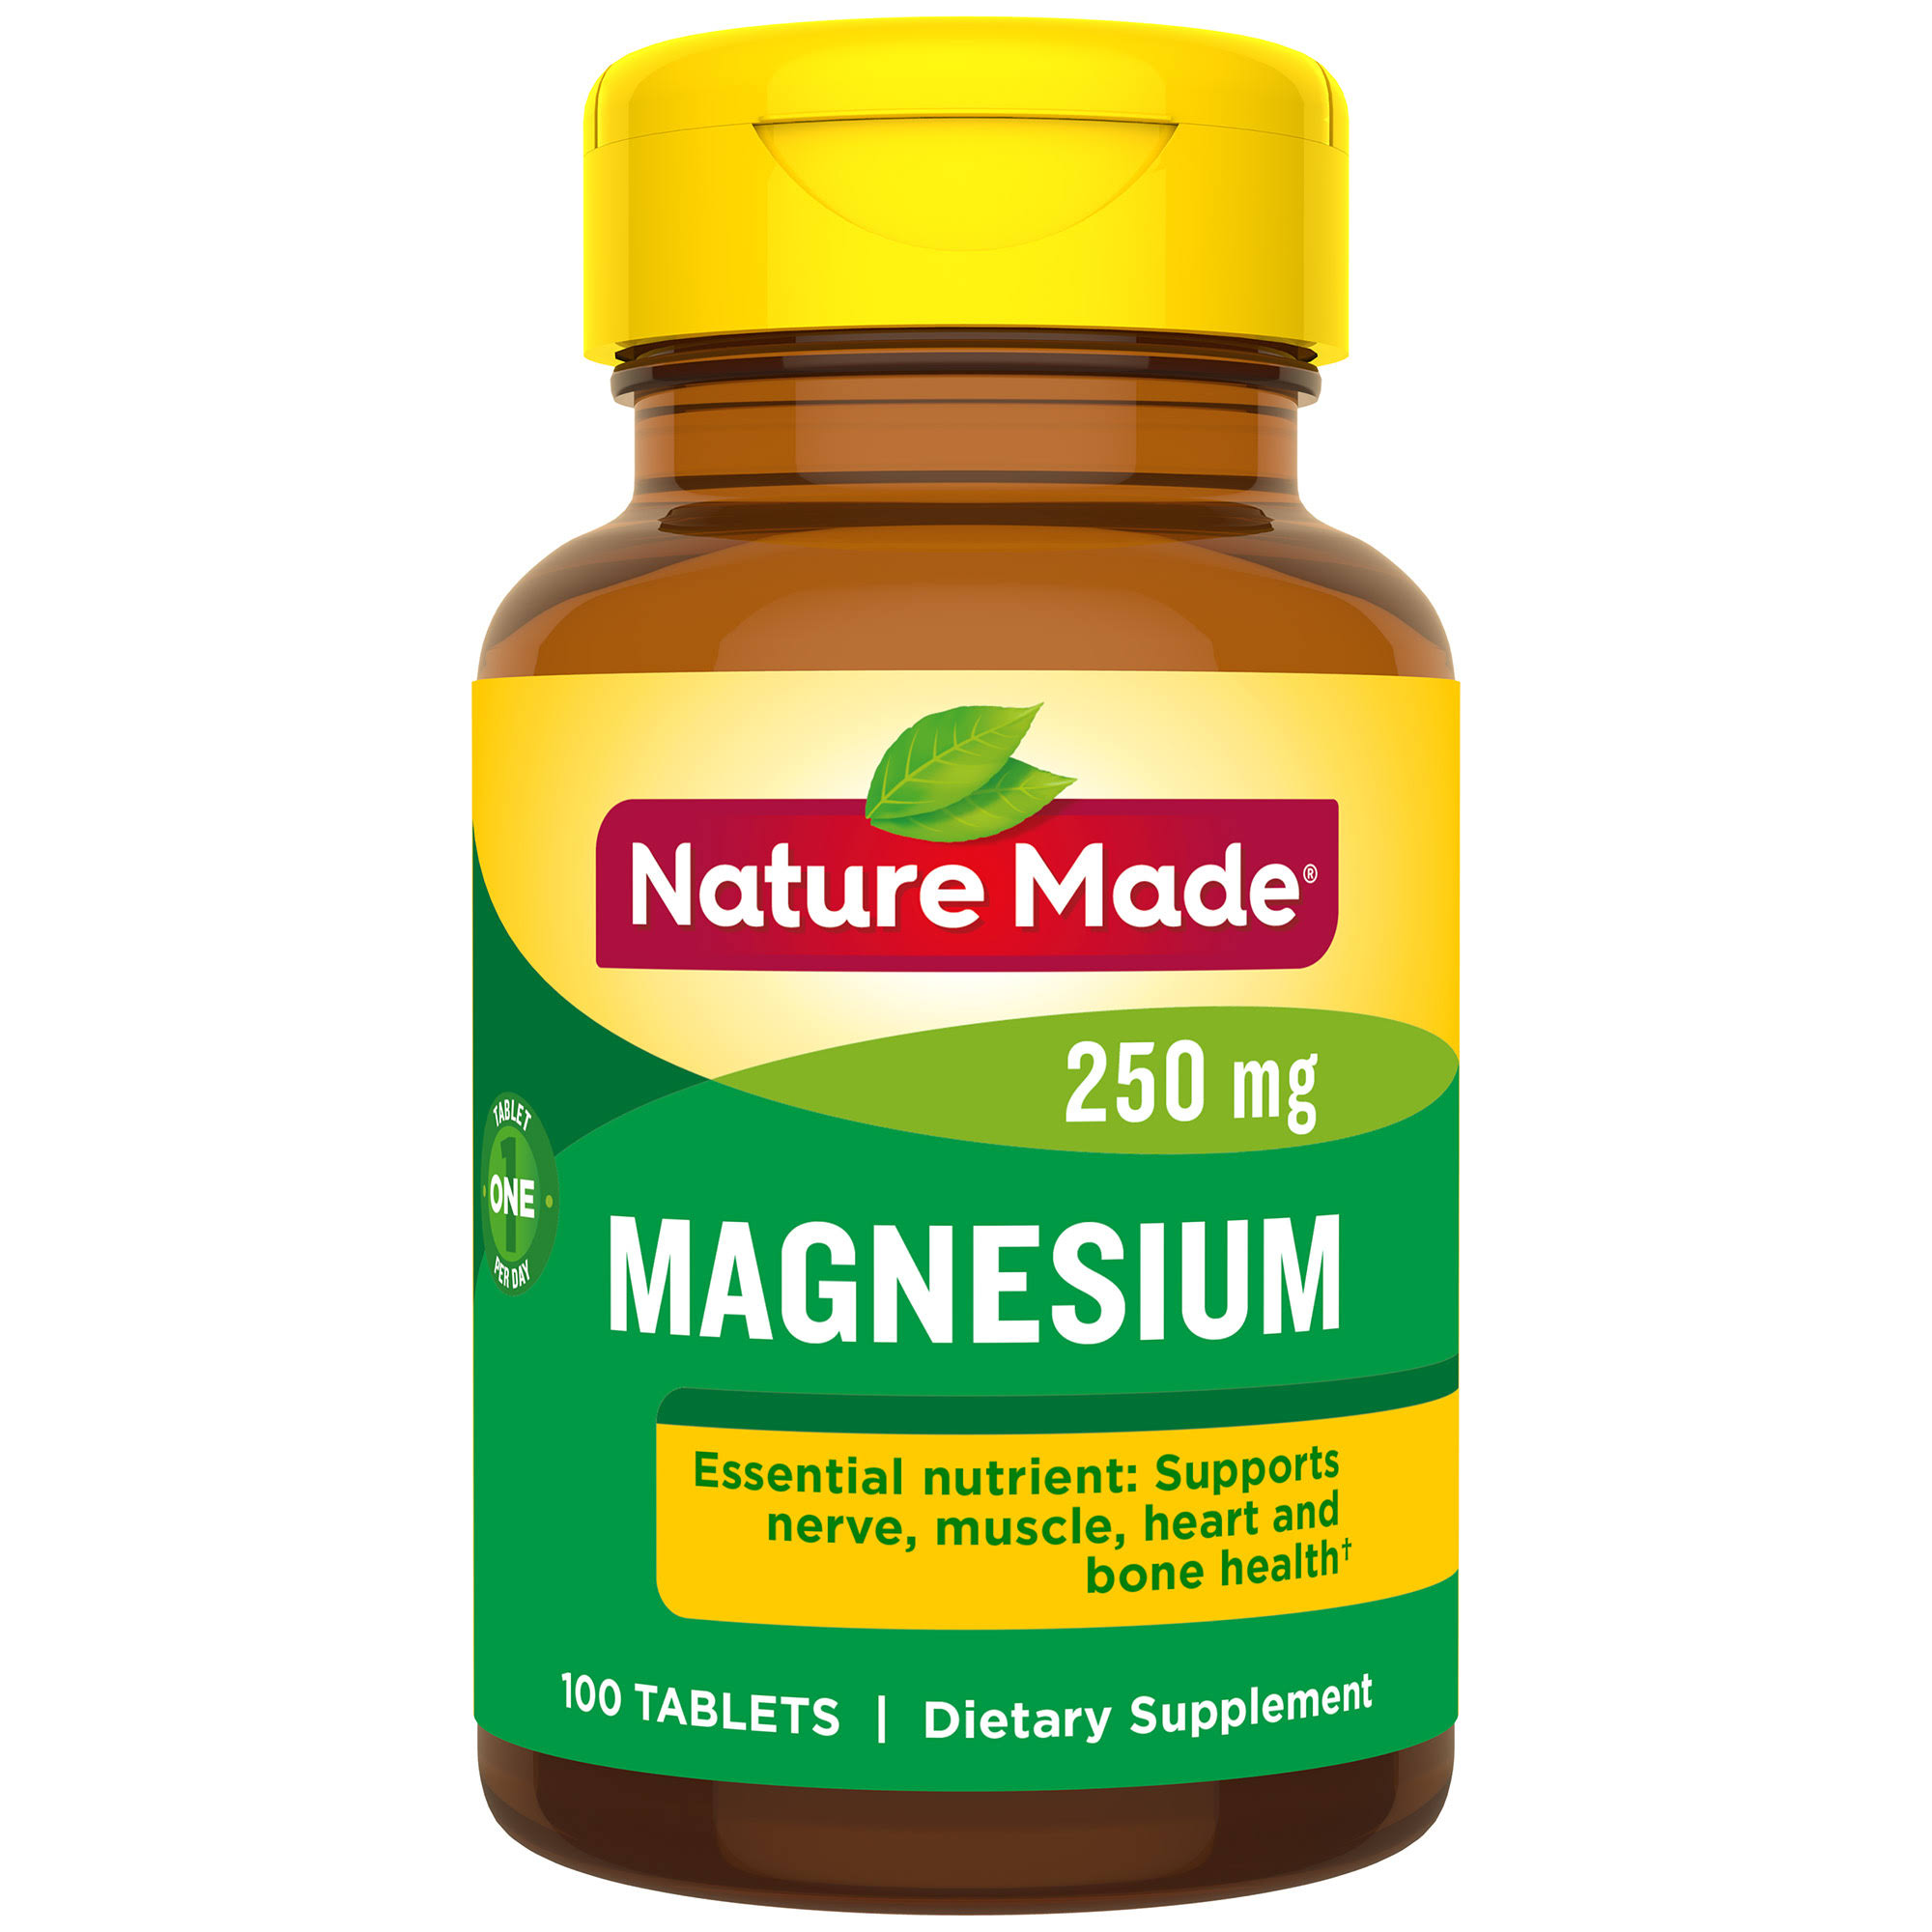 Nature Made Magnesium 250mg Dietary Supplement - 200 Tablets